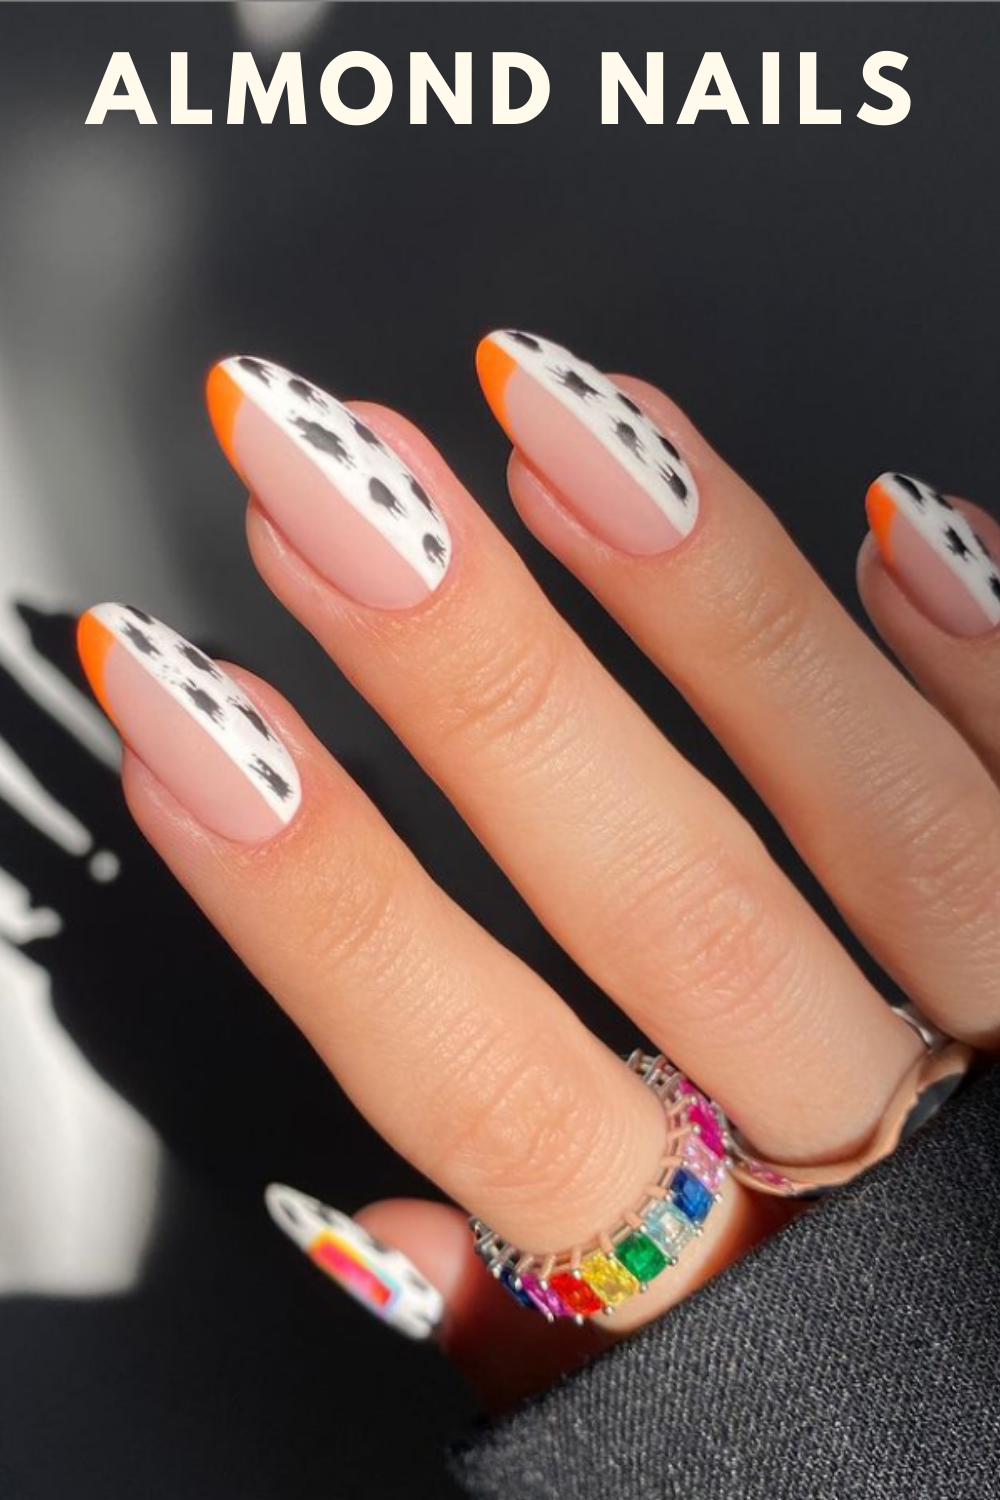 French nails for almond nail art design